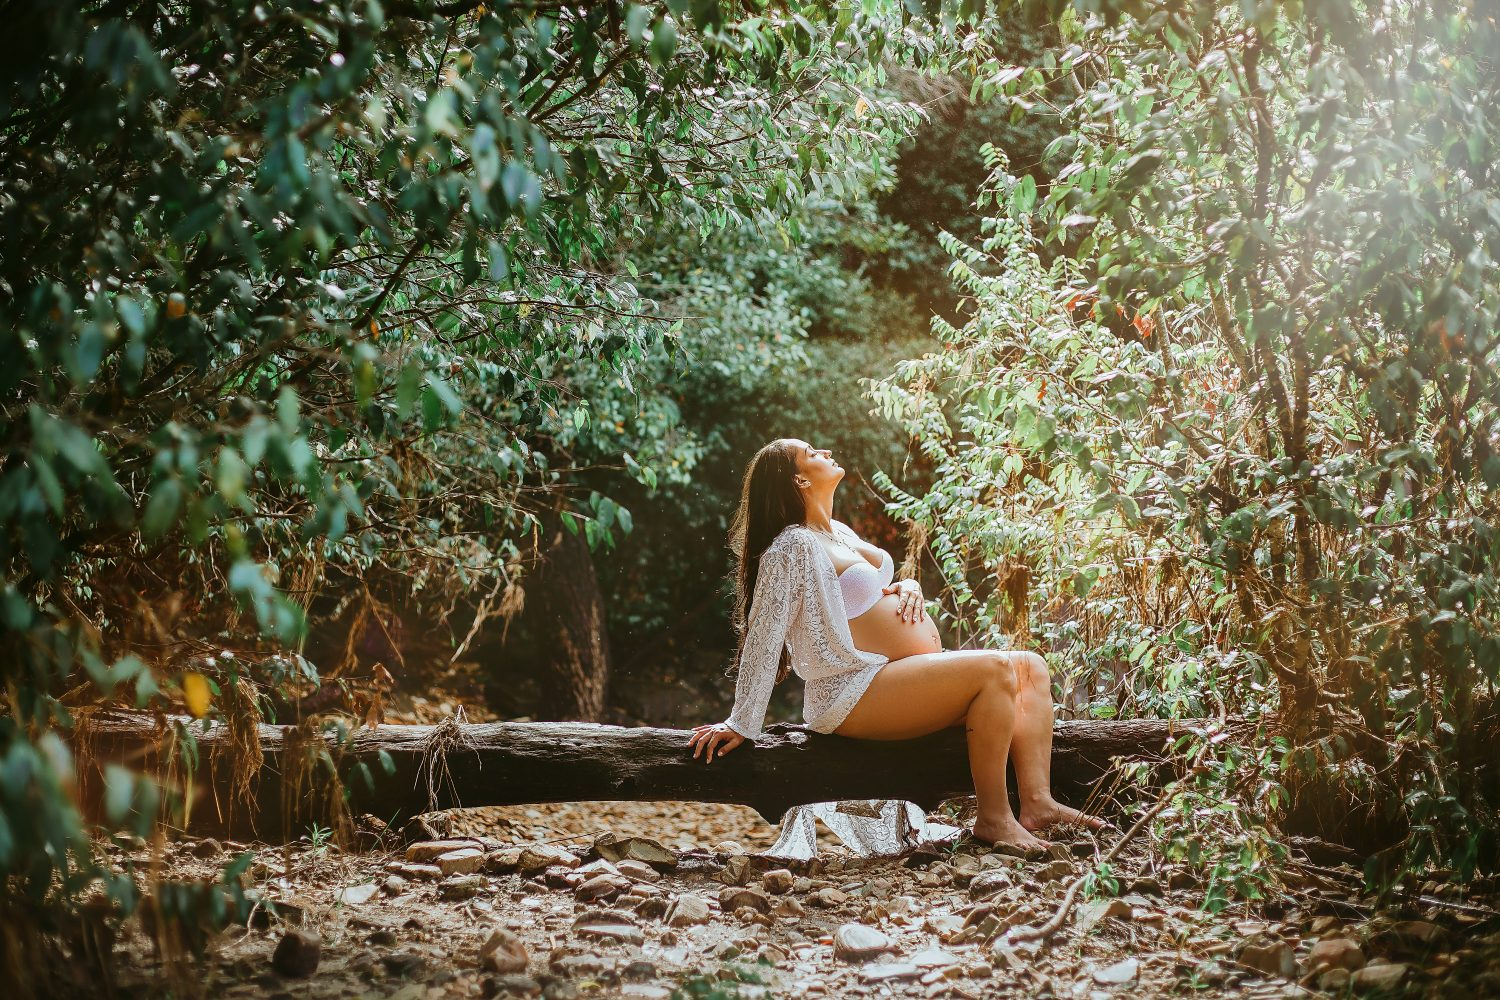 Pregnant woman relaxing in the forest.